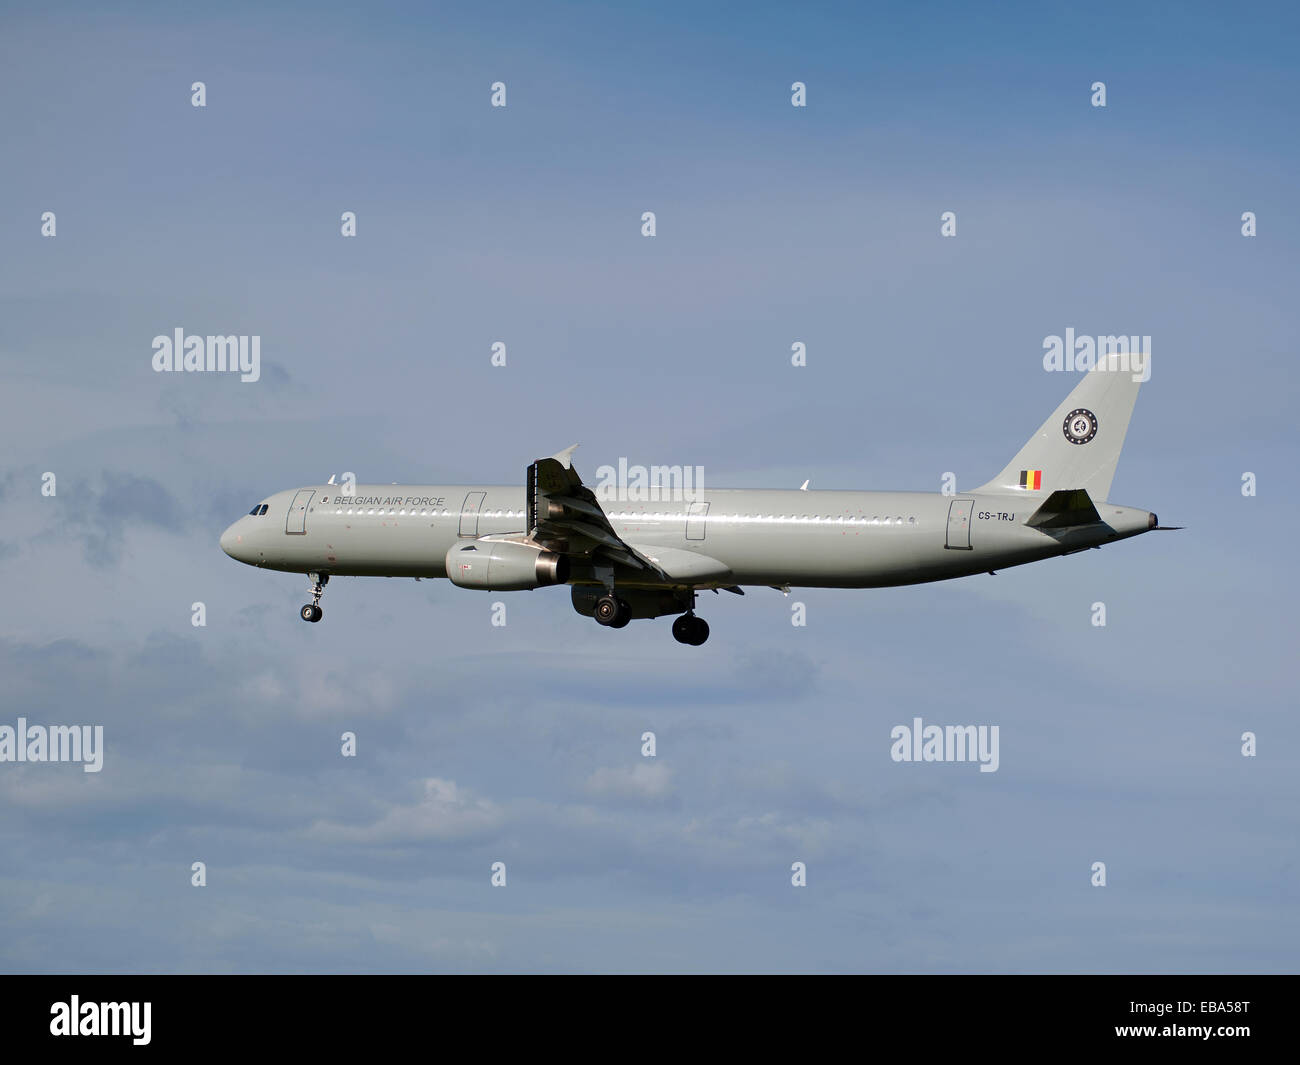 New Zealand Royal Air Force Transport Freight 757 Aircraft arriving at RAF Lossiemouth, Scotland.  SCO 9242 - Stock Image